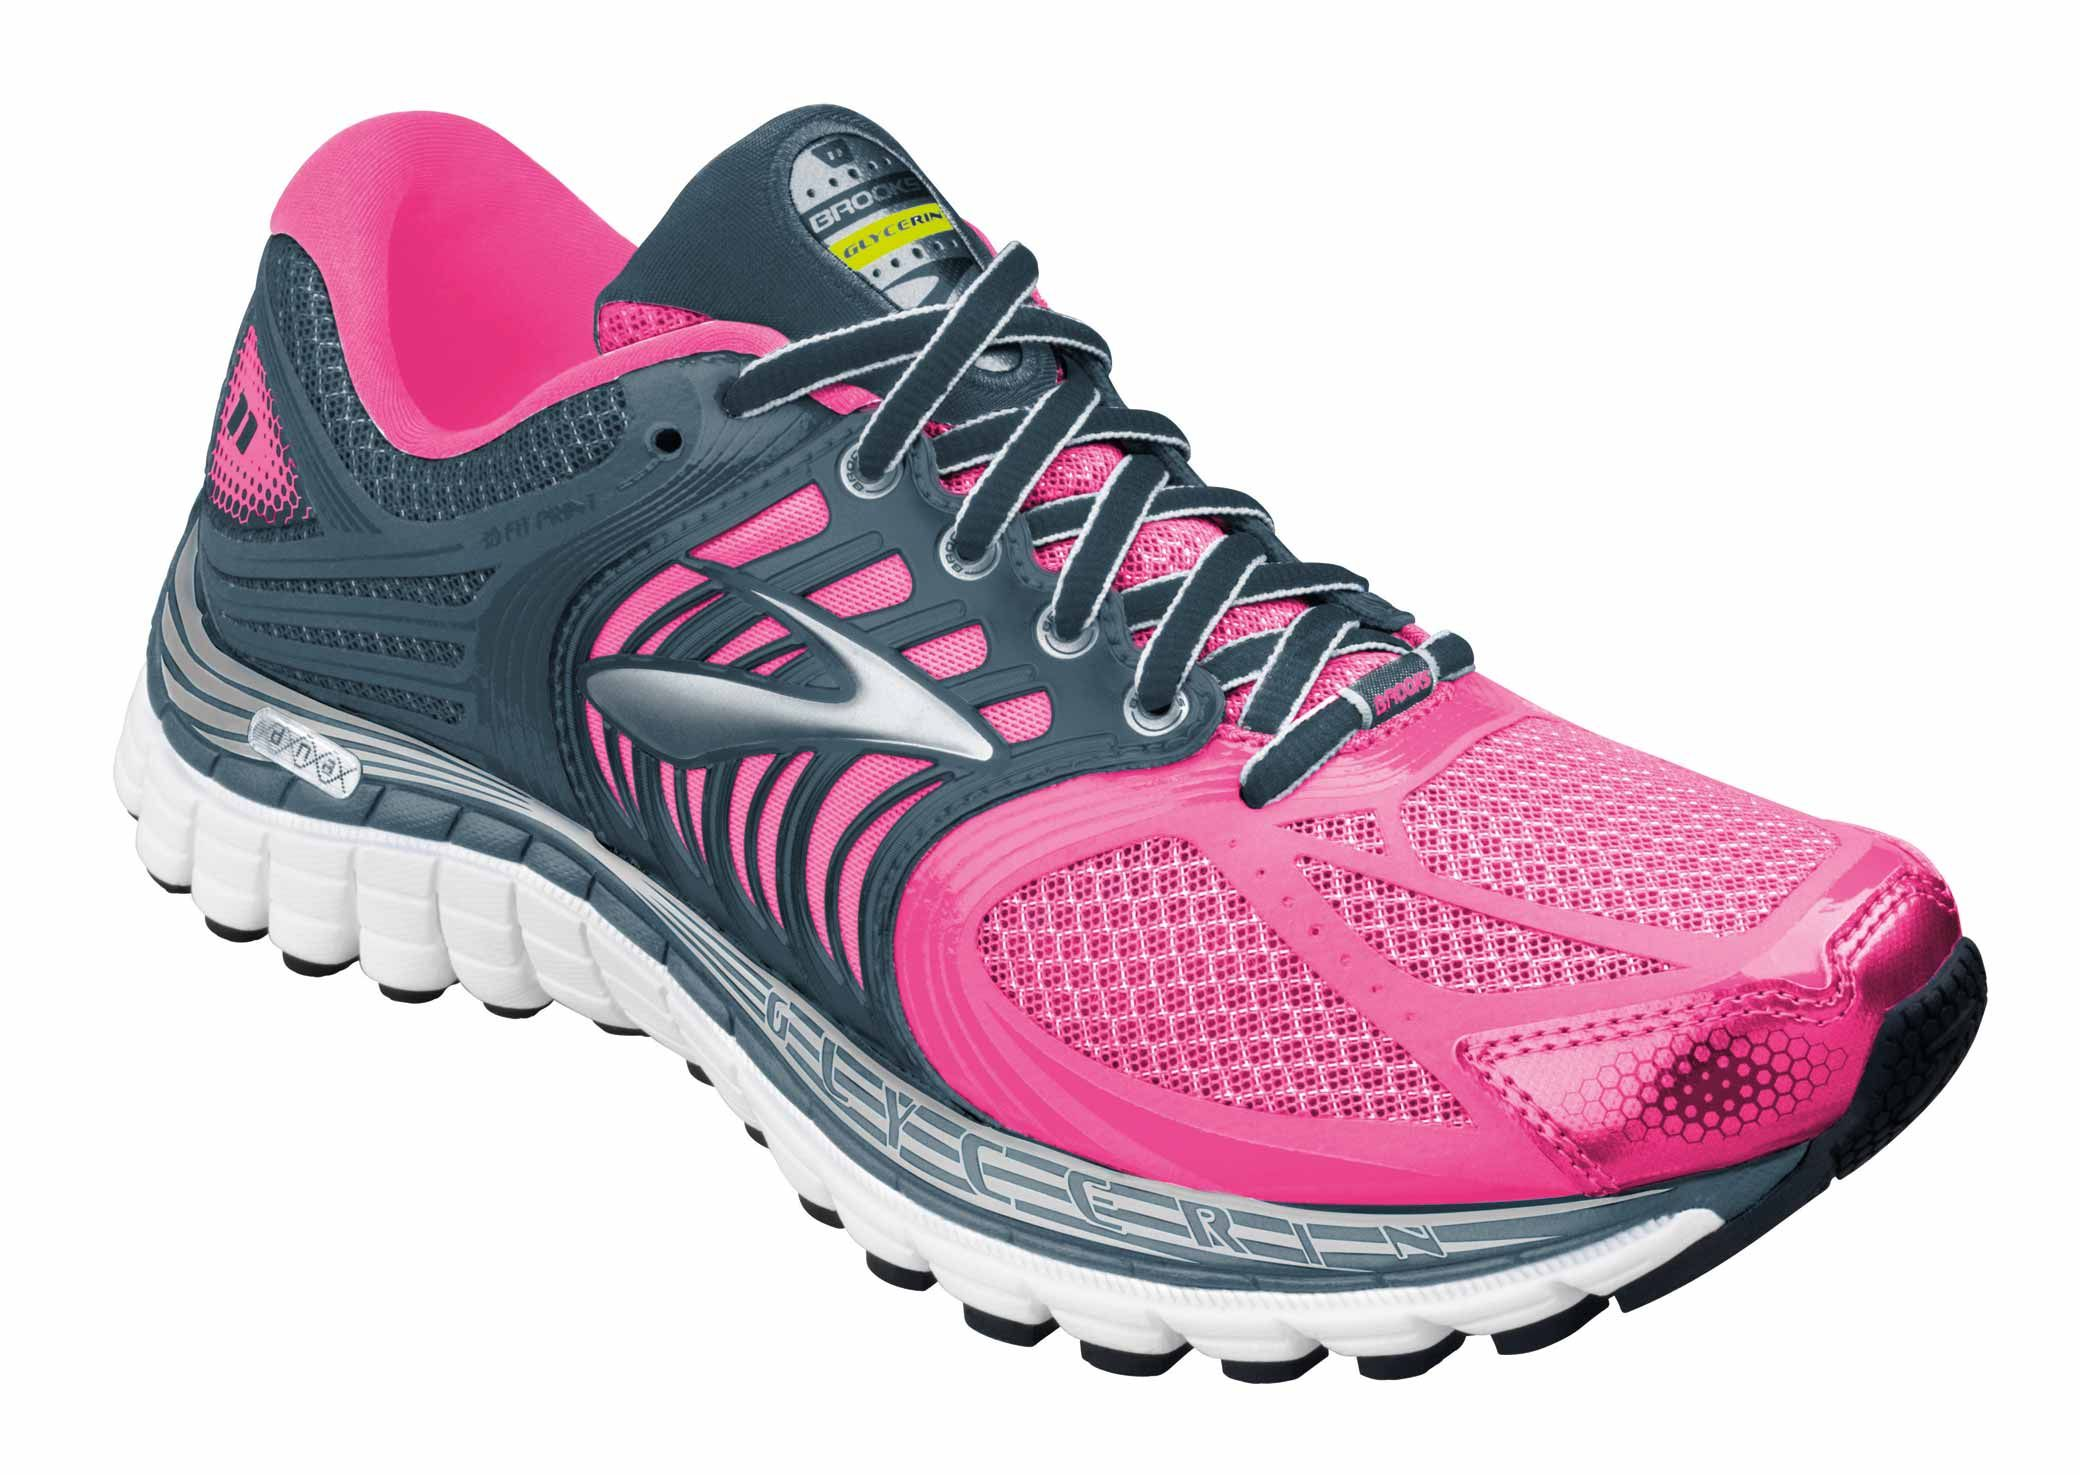 5edf3e68f73 When I finally build up to running I Want These   Brooks Glycerin 11  the latest  edition of Brooks premier women s neutral running shoe